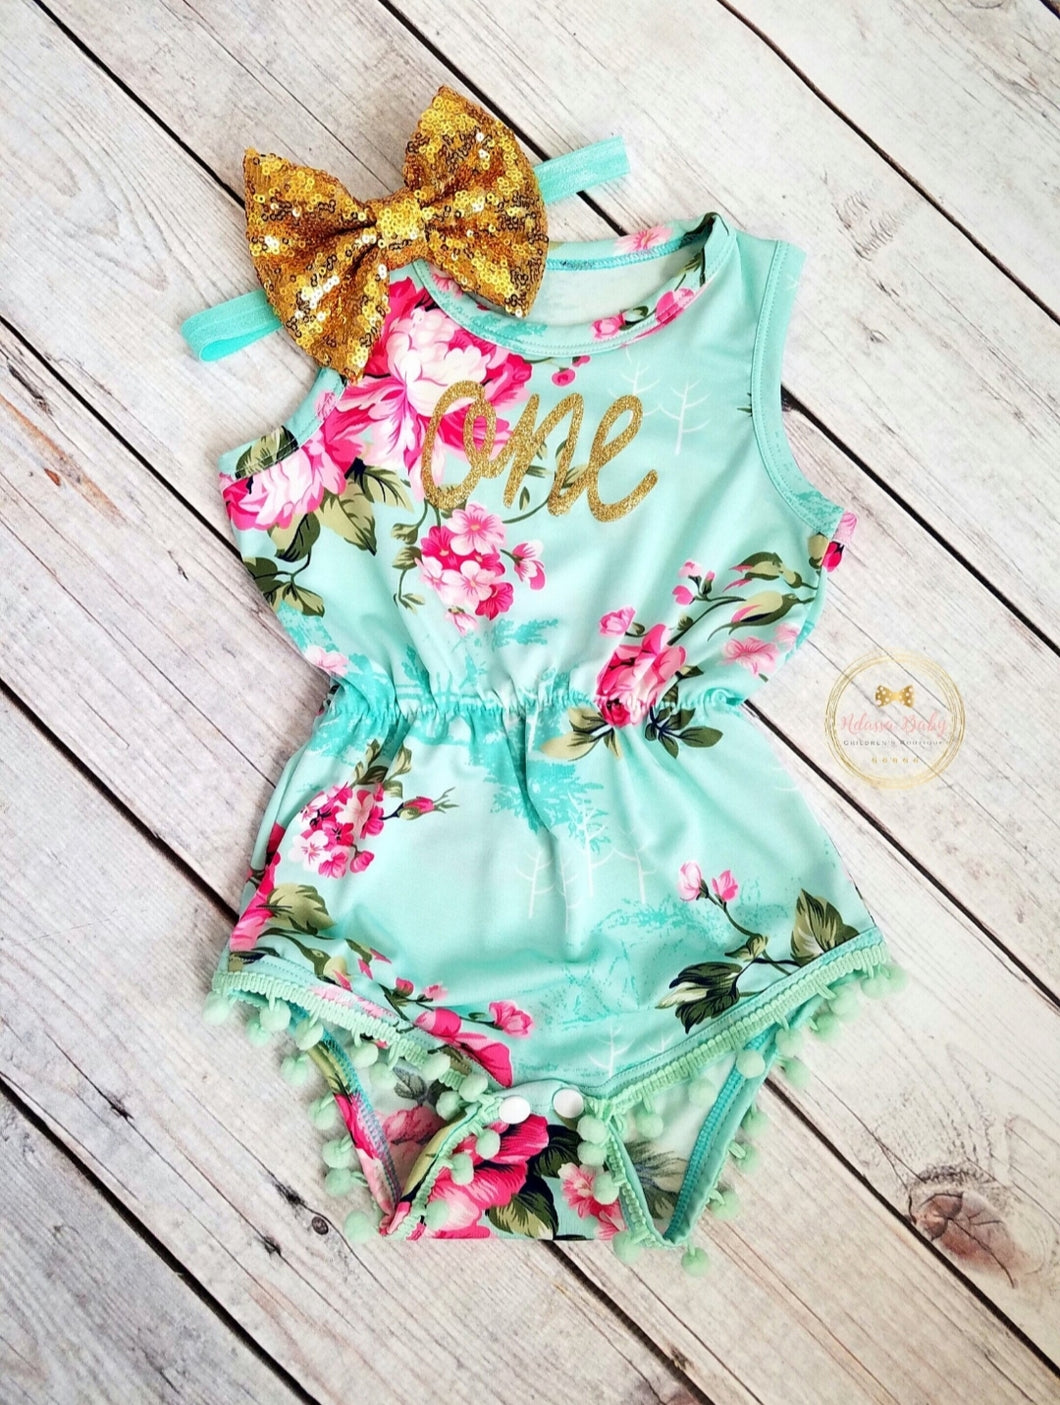 Mint Pink Gold Floral Pom Pom Romper First Birthday Outfit Girl - Adassa Rose